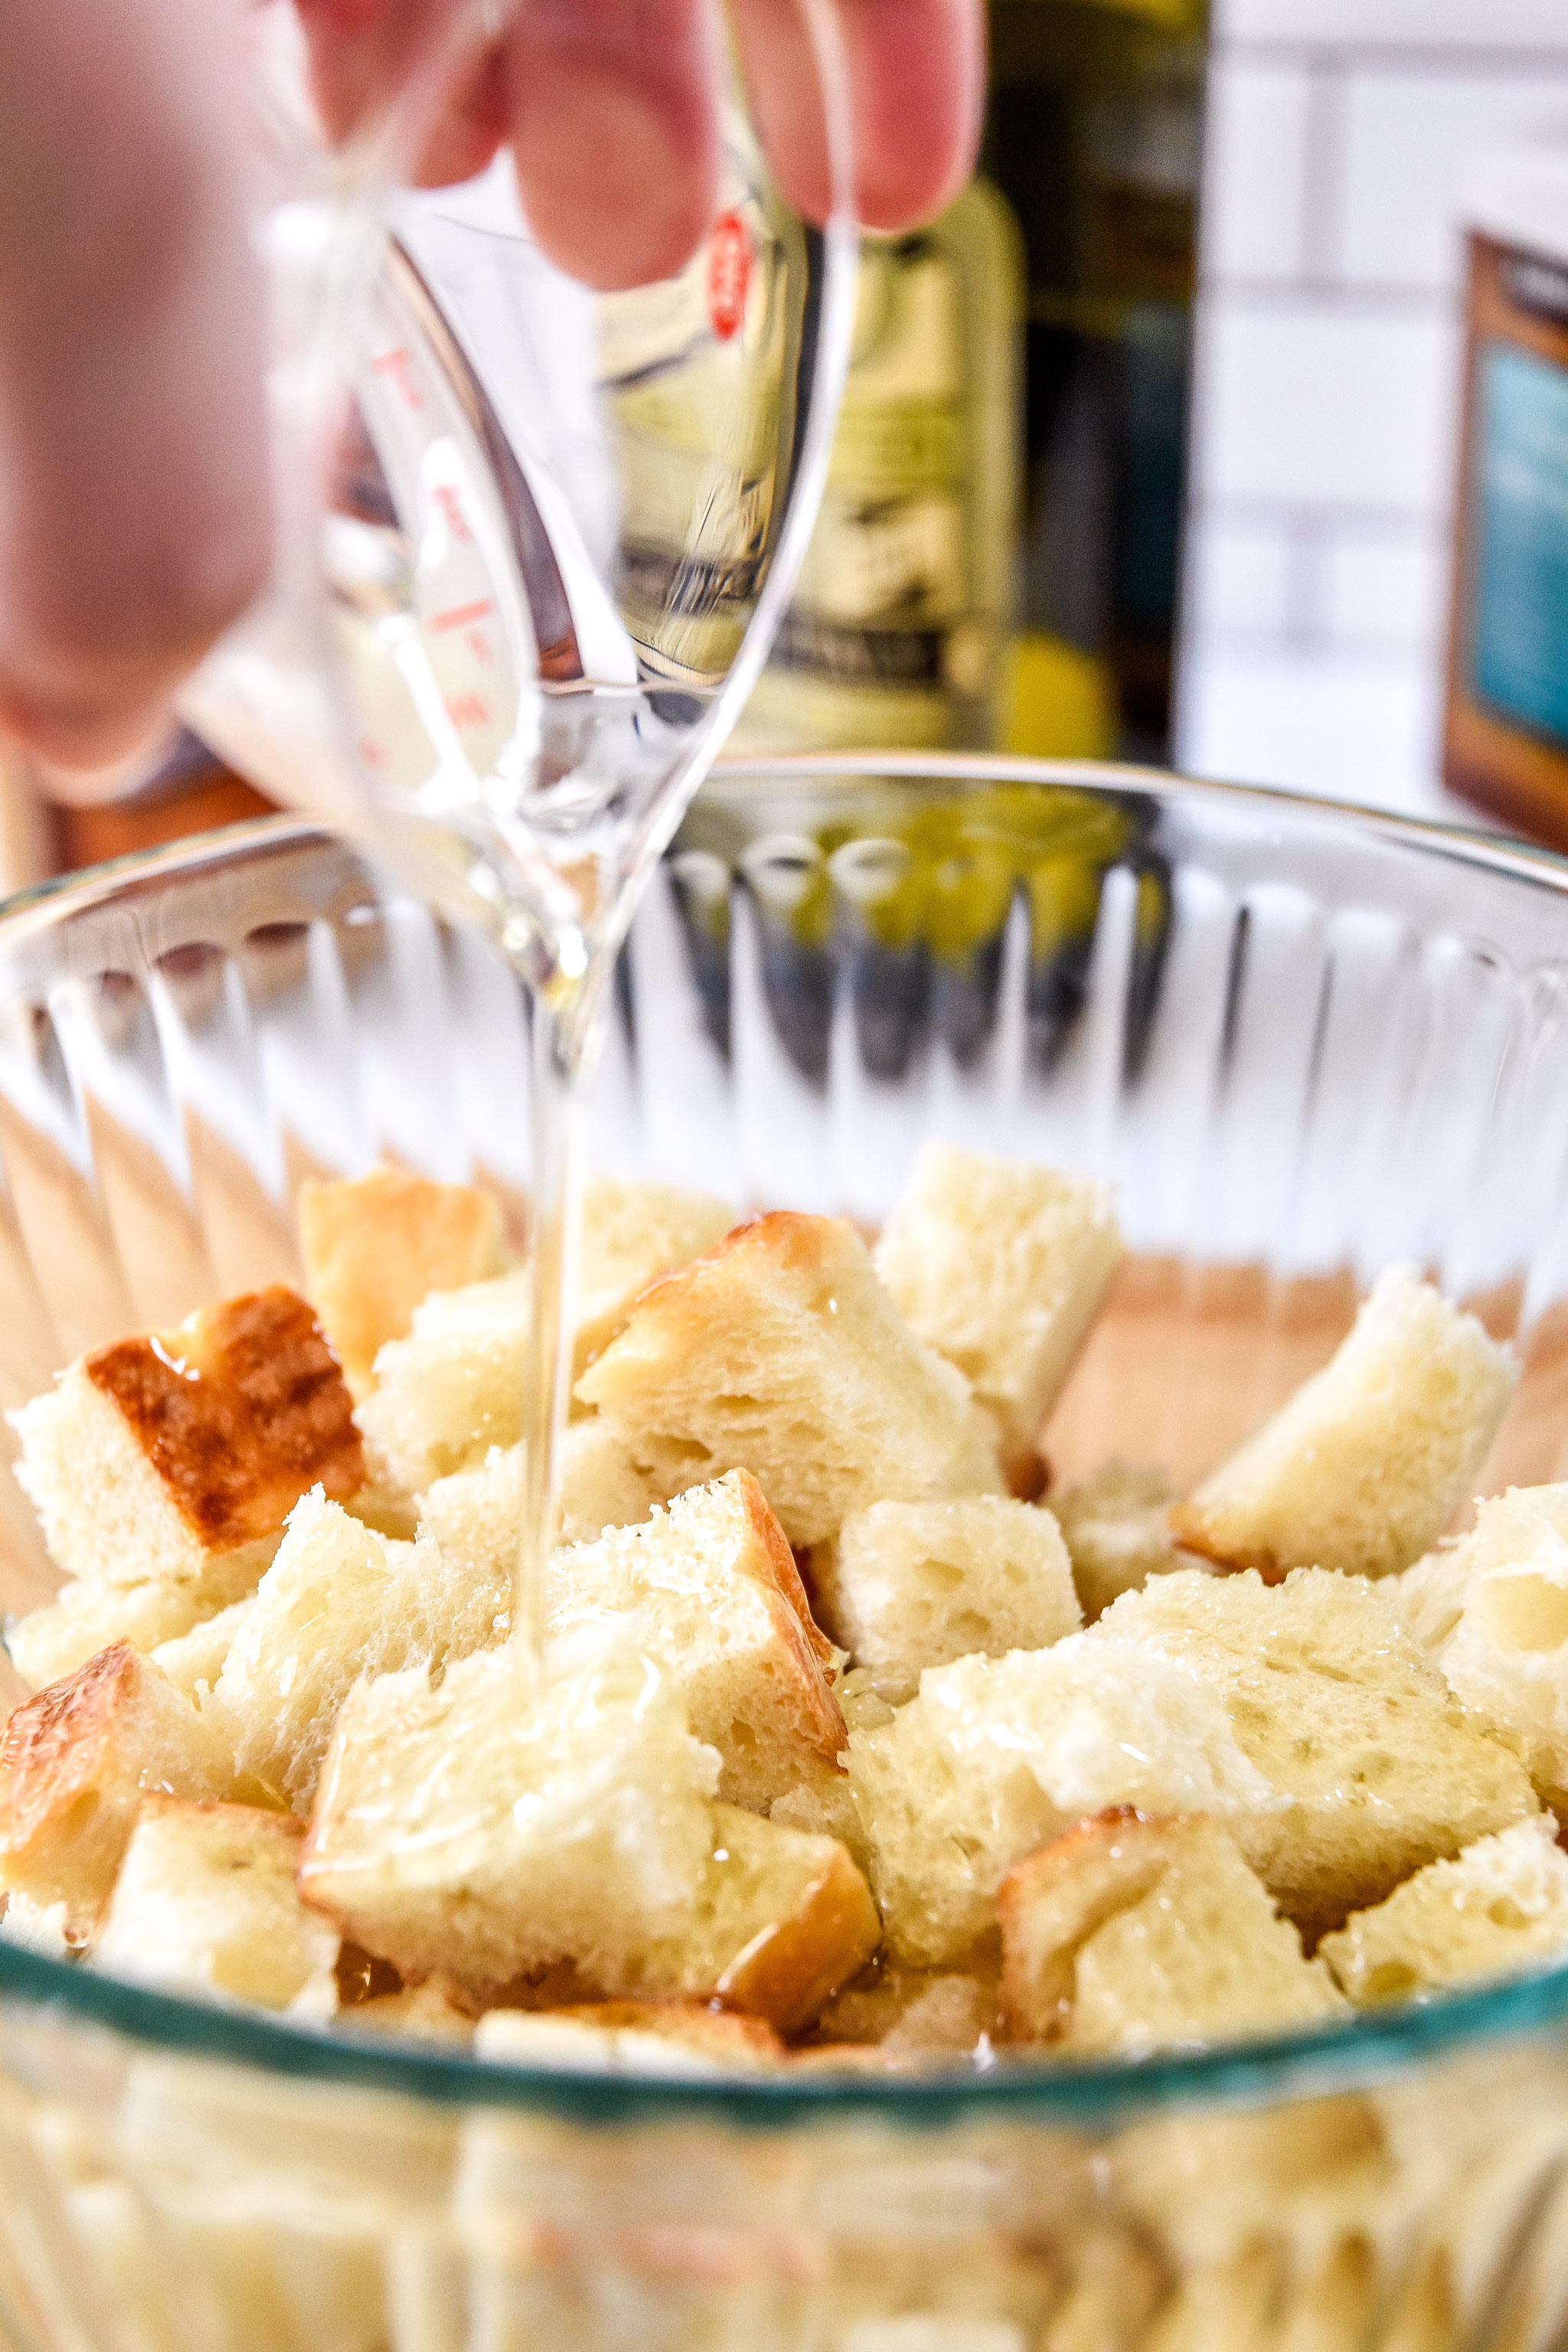 pouring oil on bread cubes to make croutons